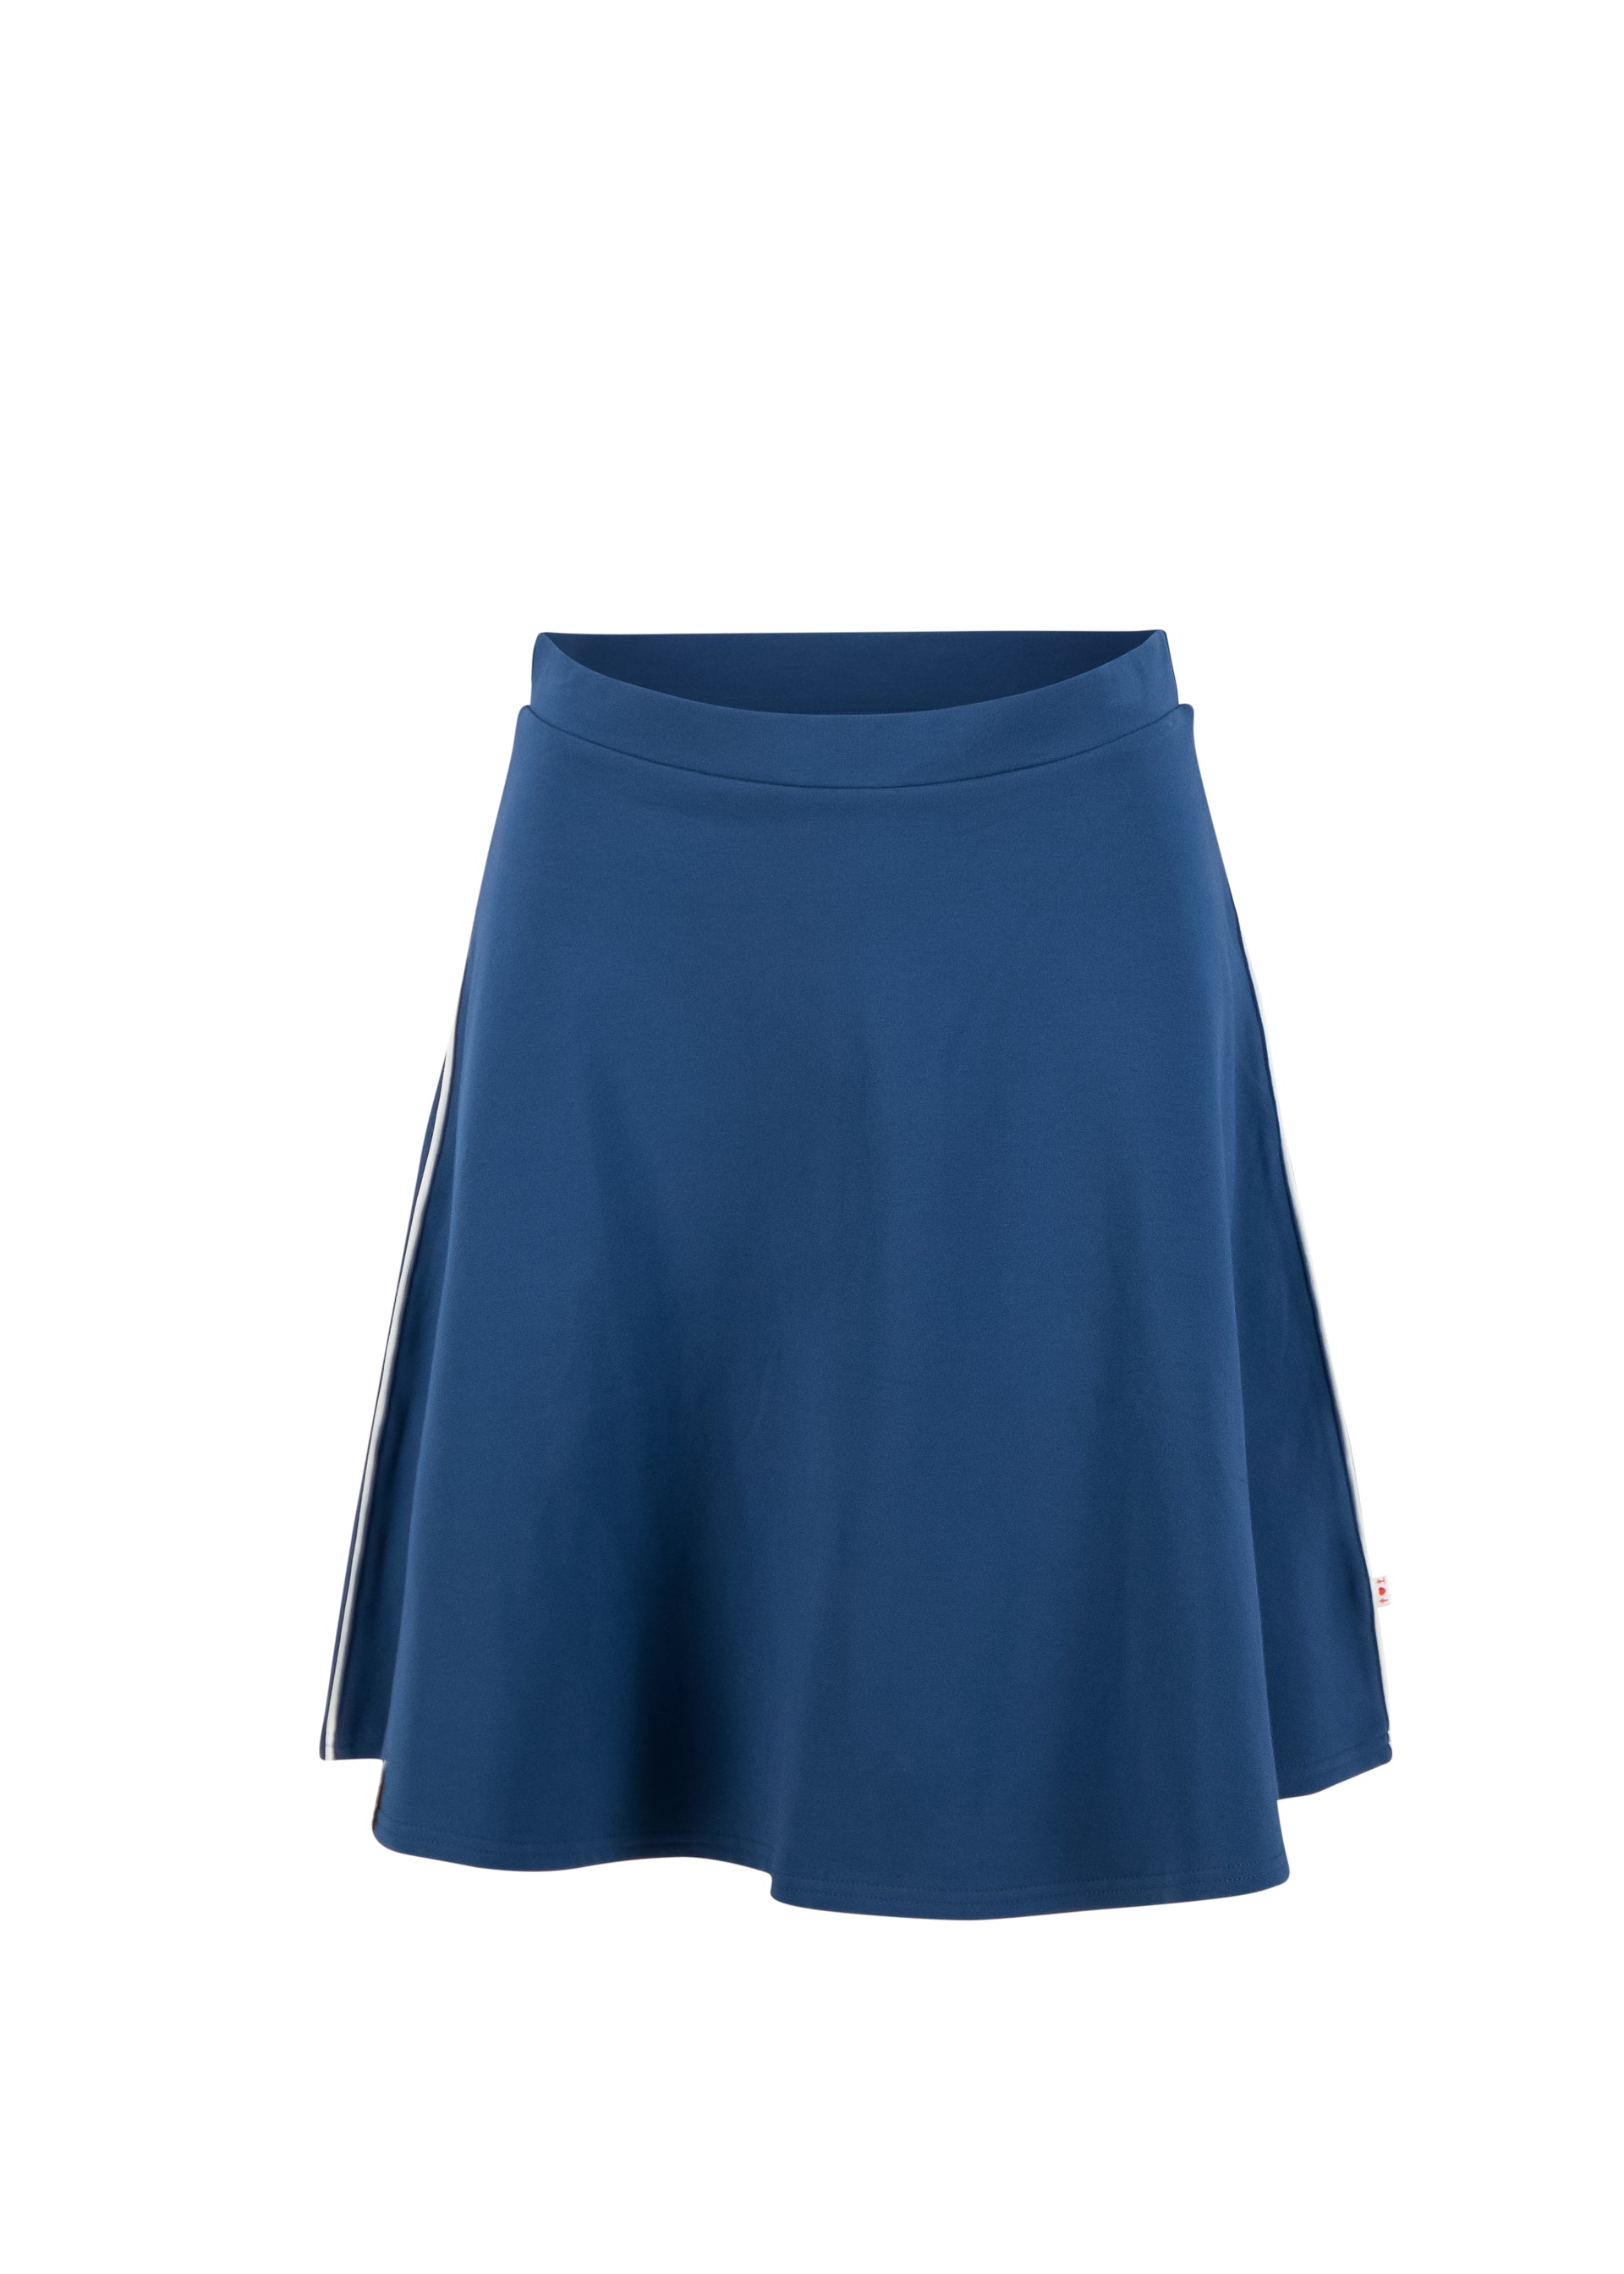 Damen Rock sporty sister skirt, blau